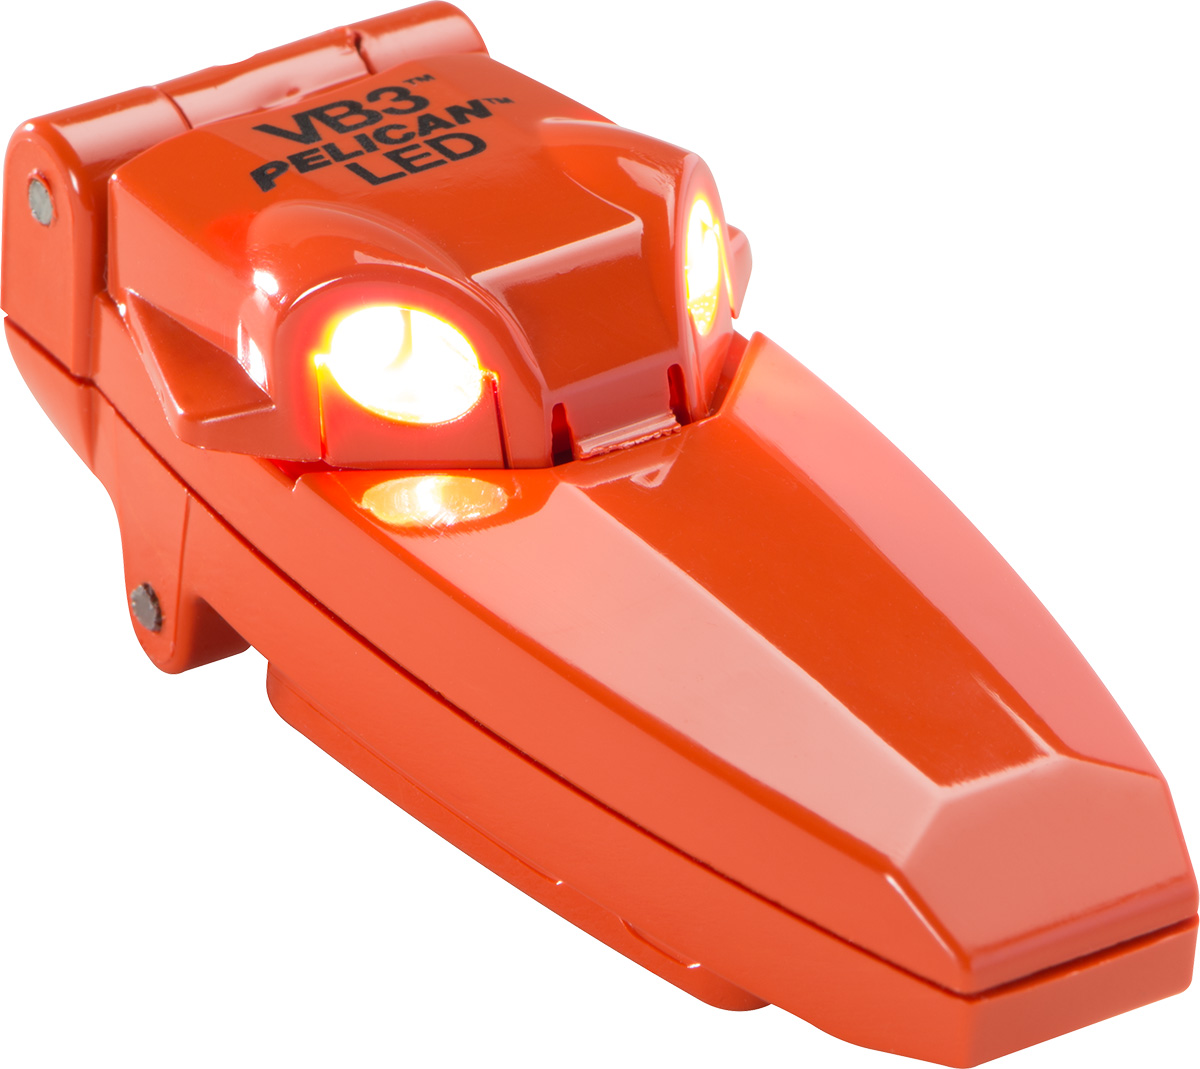 pelican peli products 2220 lumens police cop clip on led light